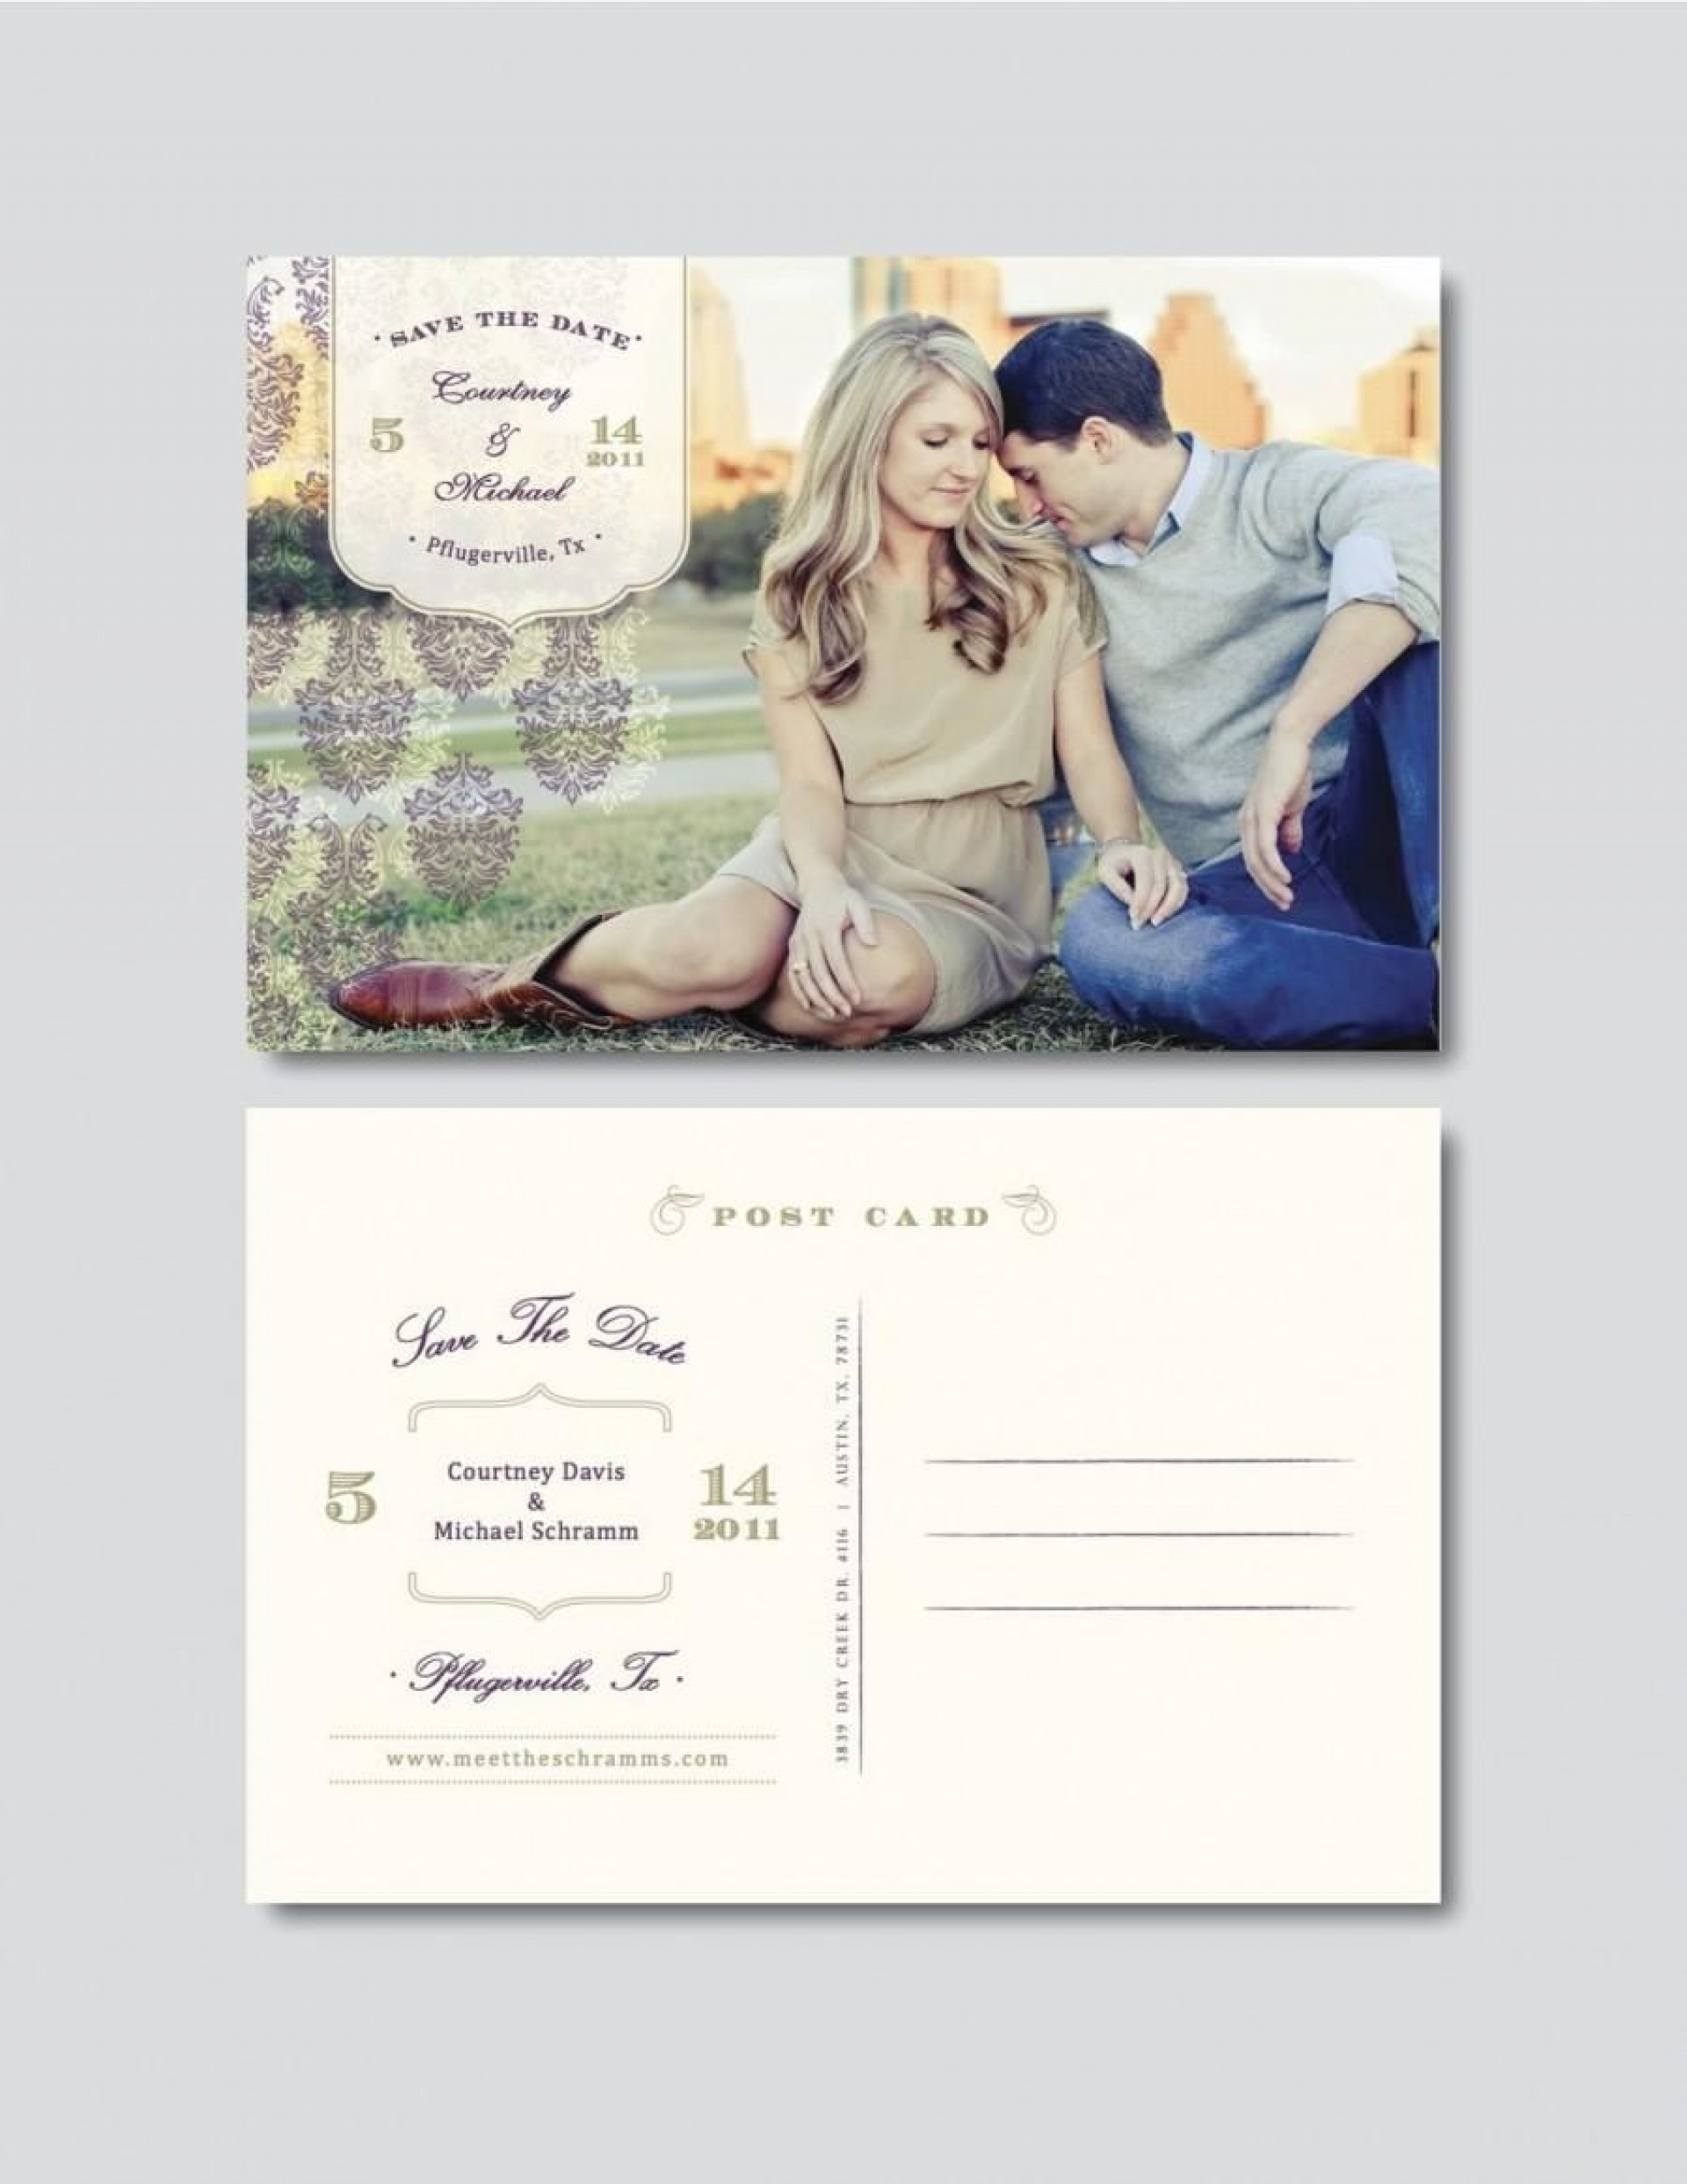 009 Stupendou Save The Date Template Photoshop Design  Adobe Card1920